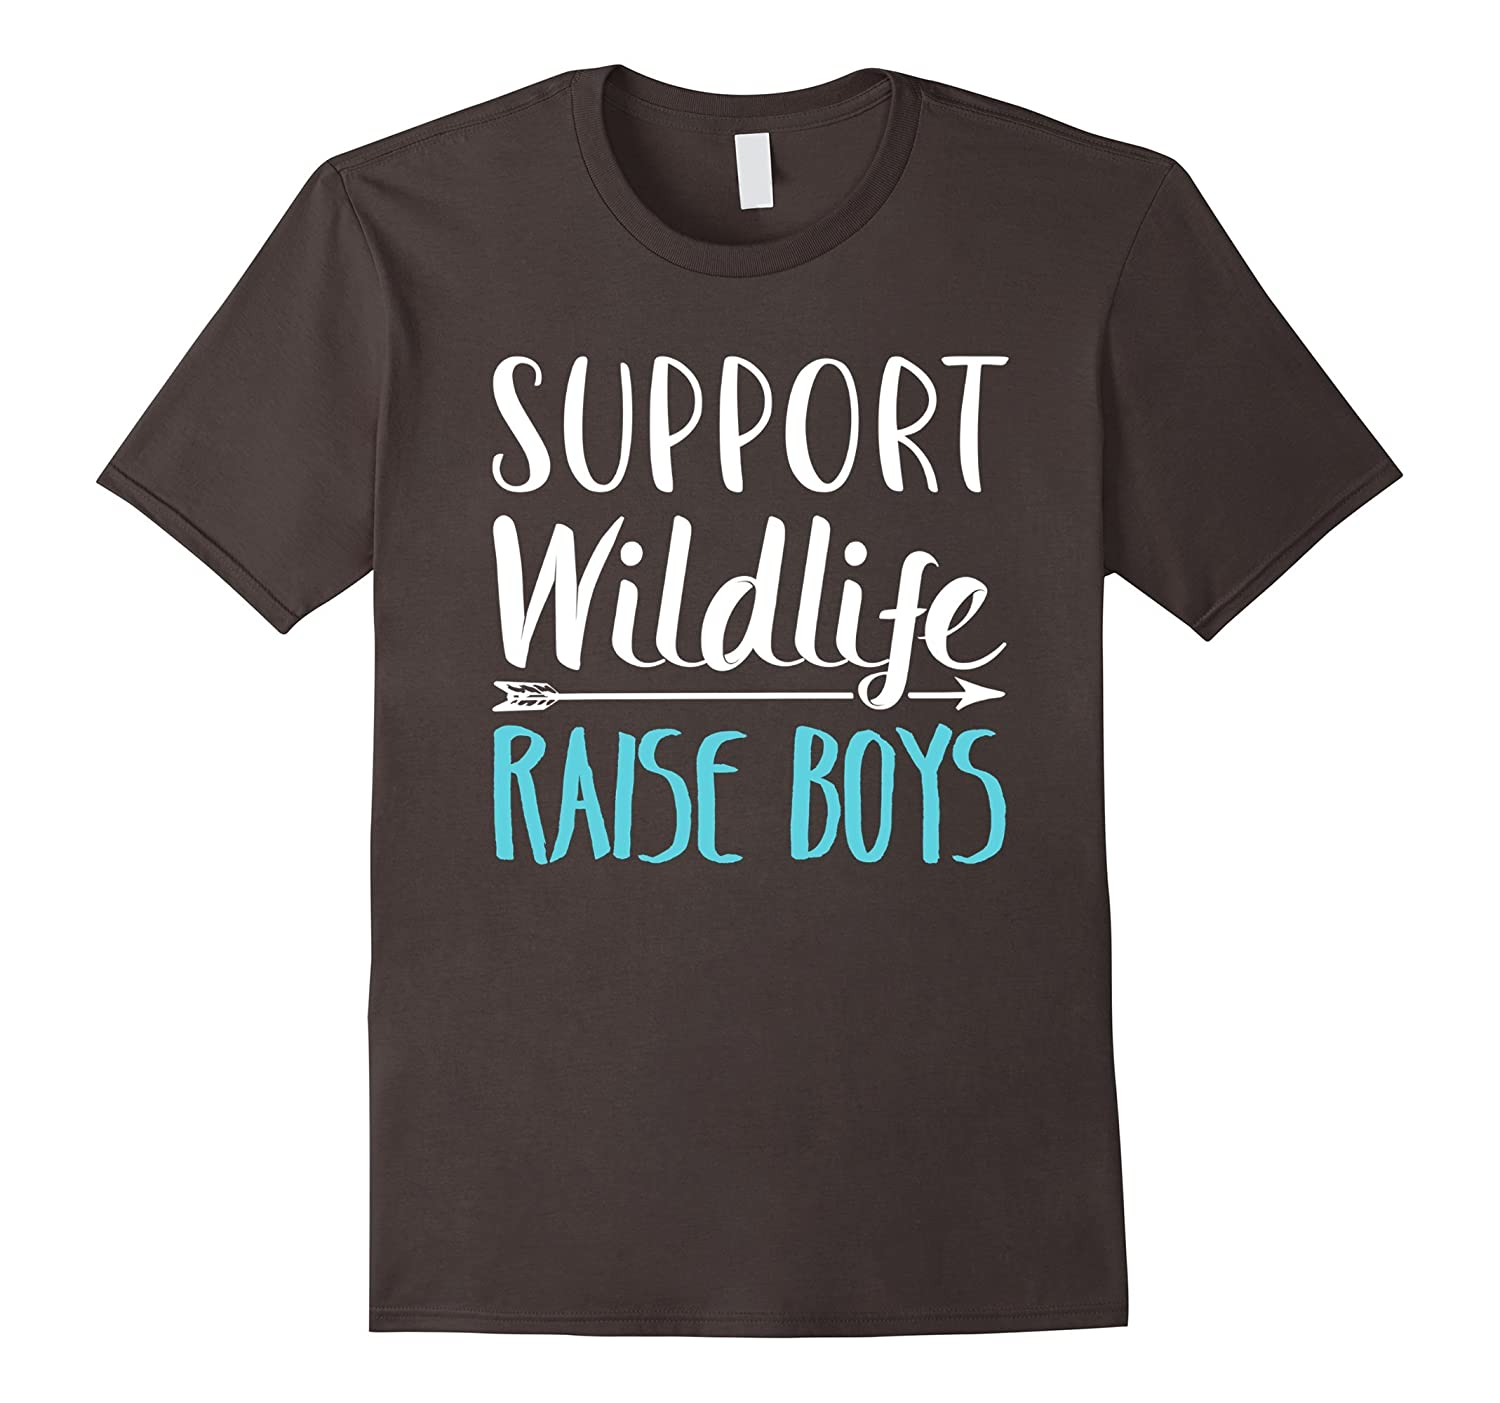 Support Wildlife Raise Boys - Funny Mothers Day T-Shirt-Vaci